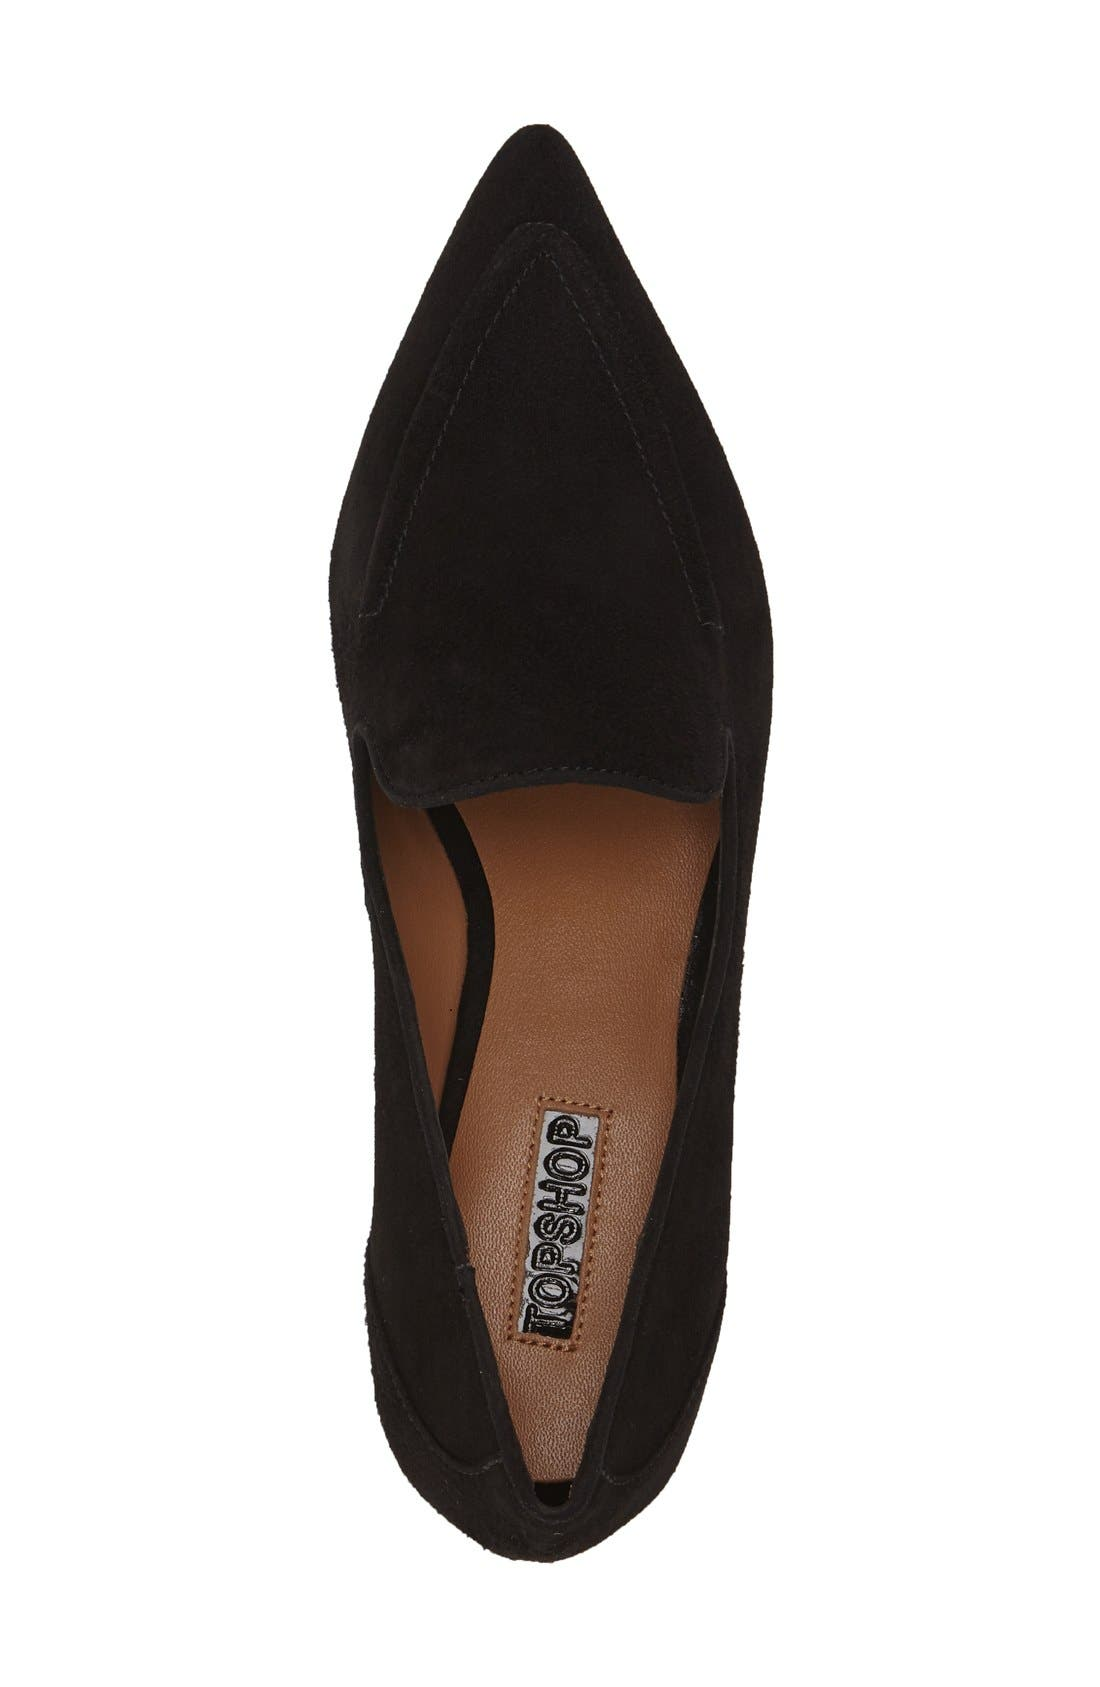 TOPSHOP, 'Kindred' Pointy Toe Loafer, Alternate thumbnail 2, color, 001